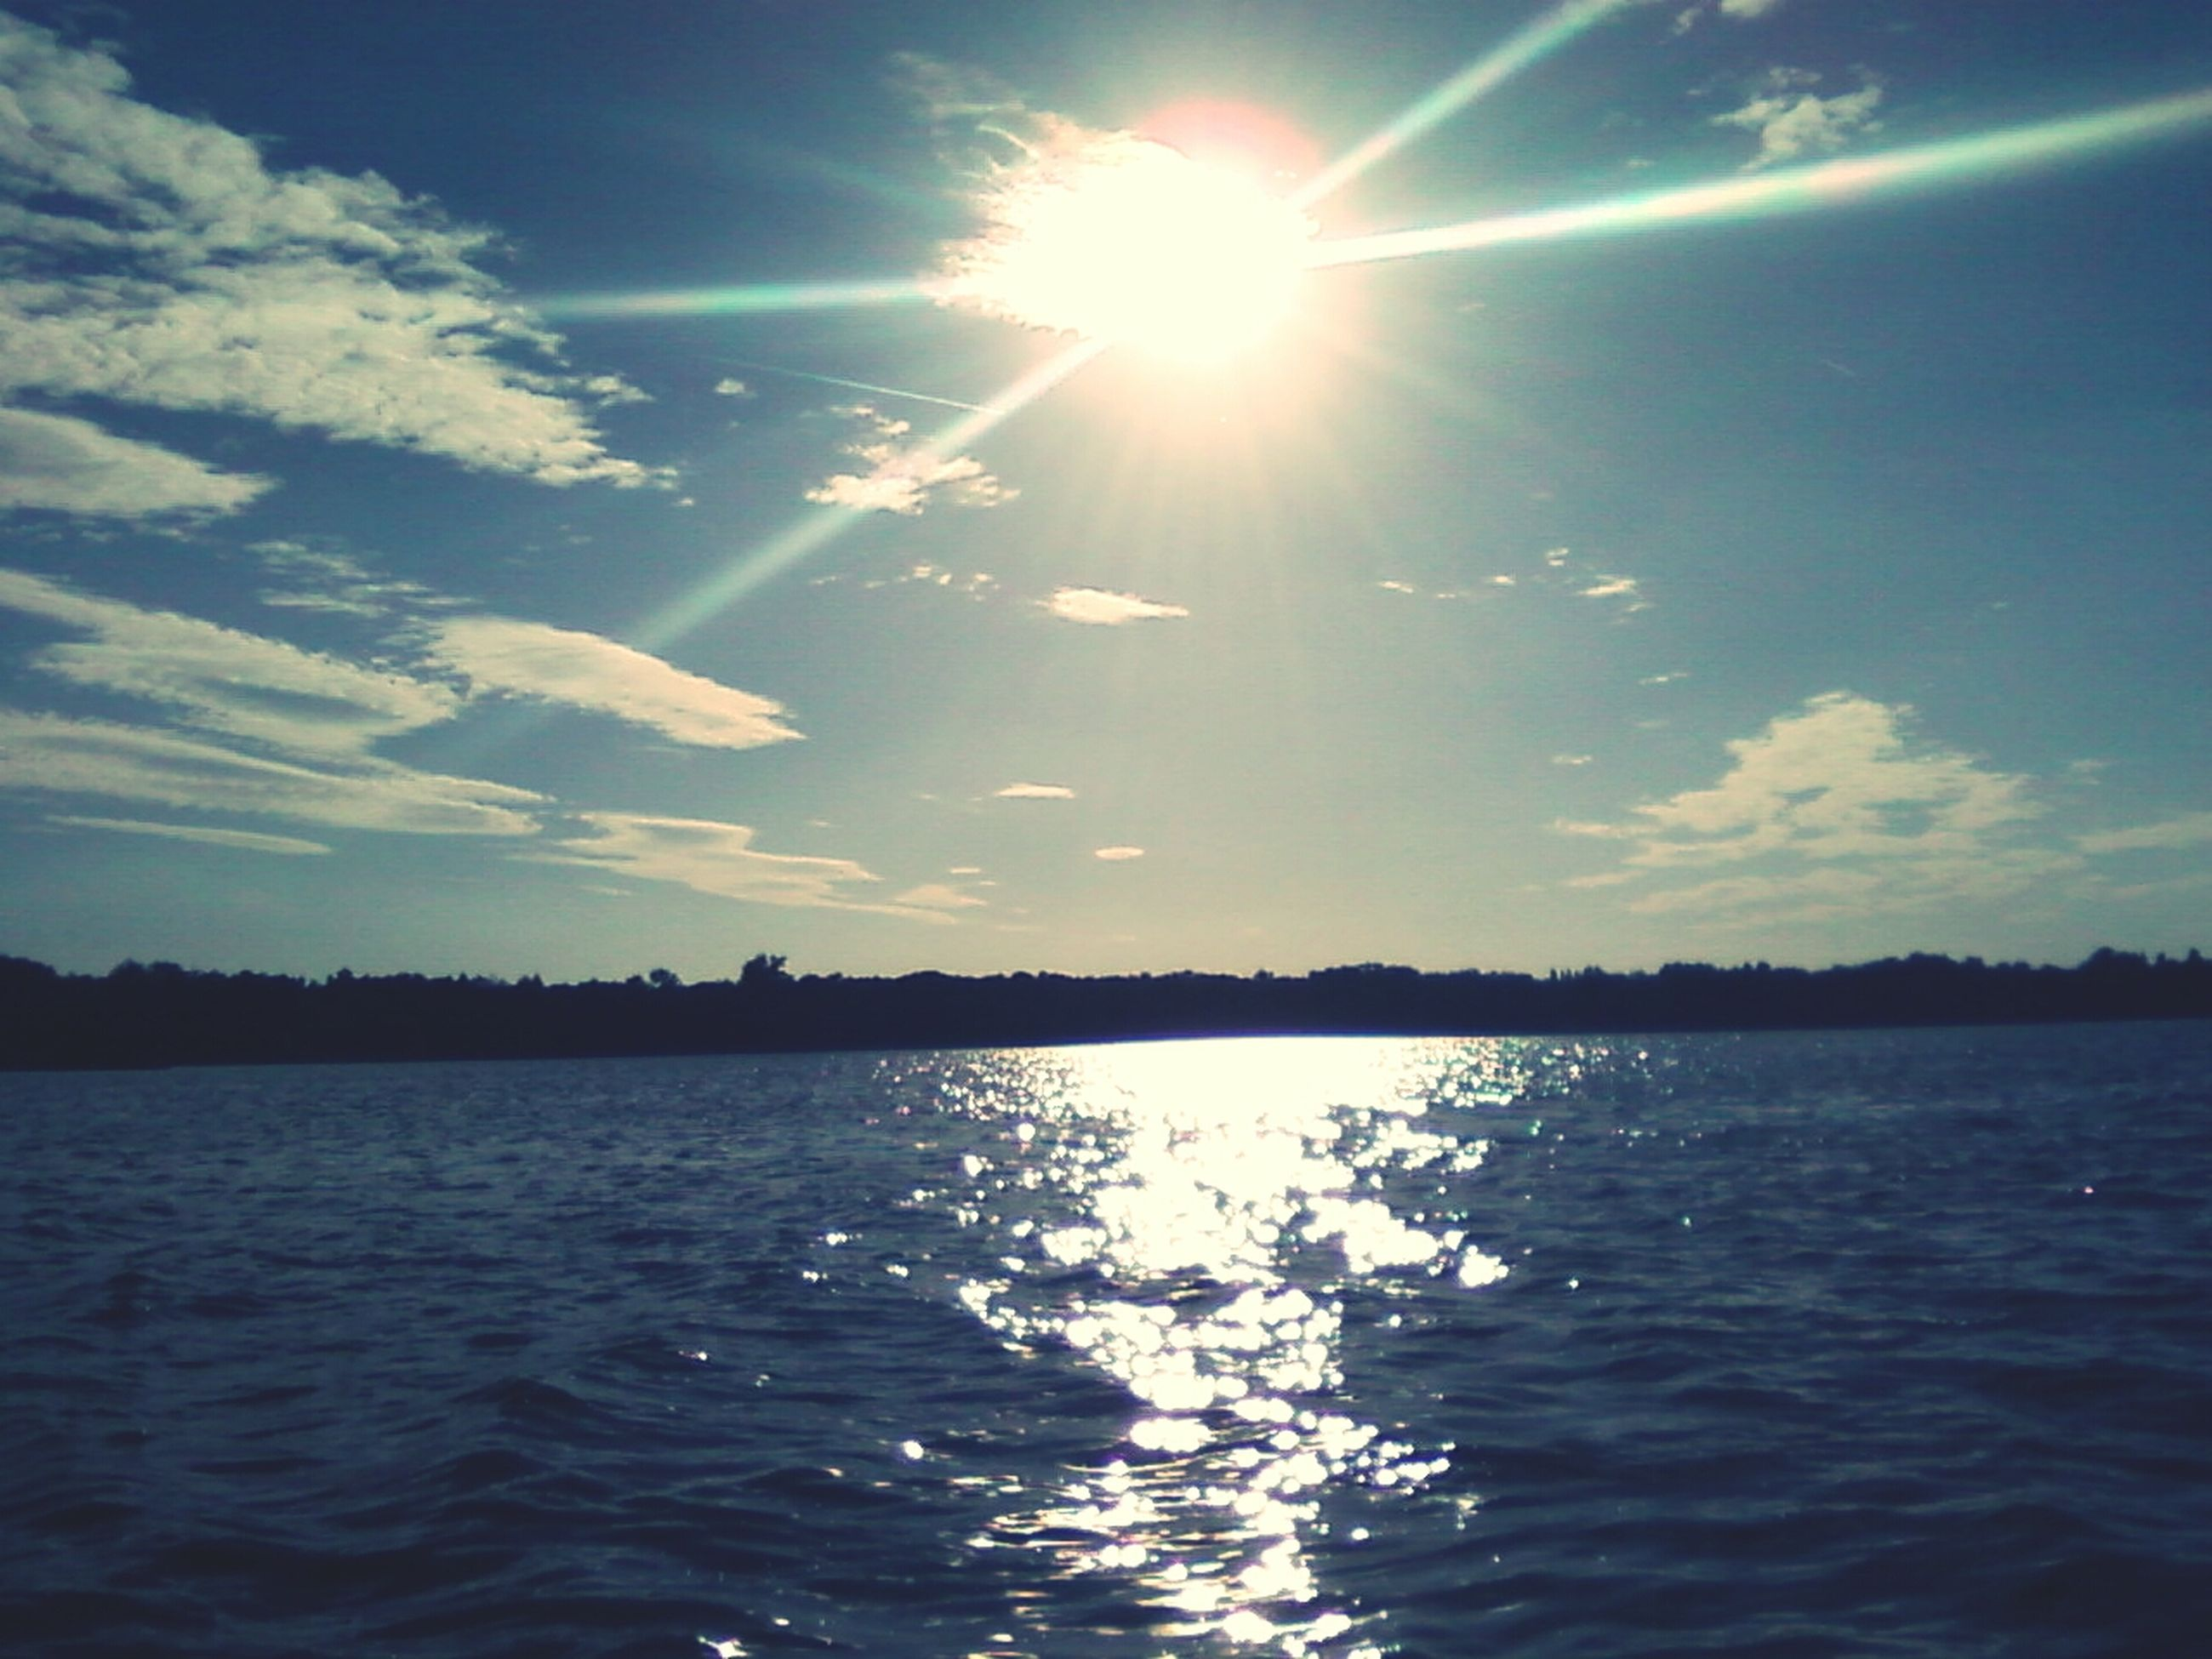 sun, water, waterfront, sunbeam, sunlight, tranquility, sky, tranquil scene, reflection, scenics, beauty in nature, lens flare, rippled, nature, blue, lake, sea, sunny, idyllic, bright